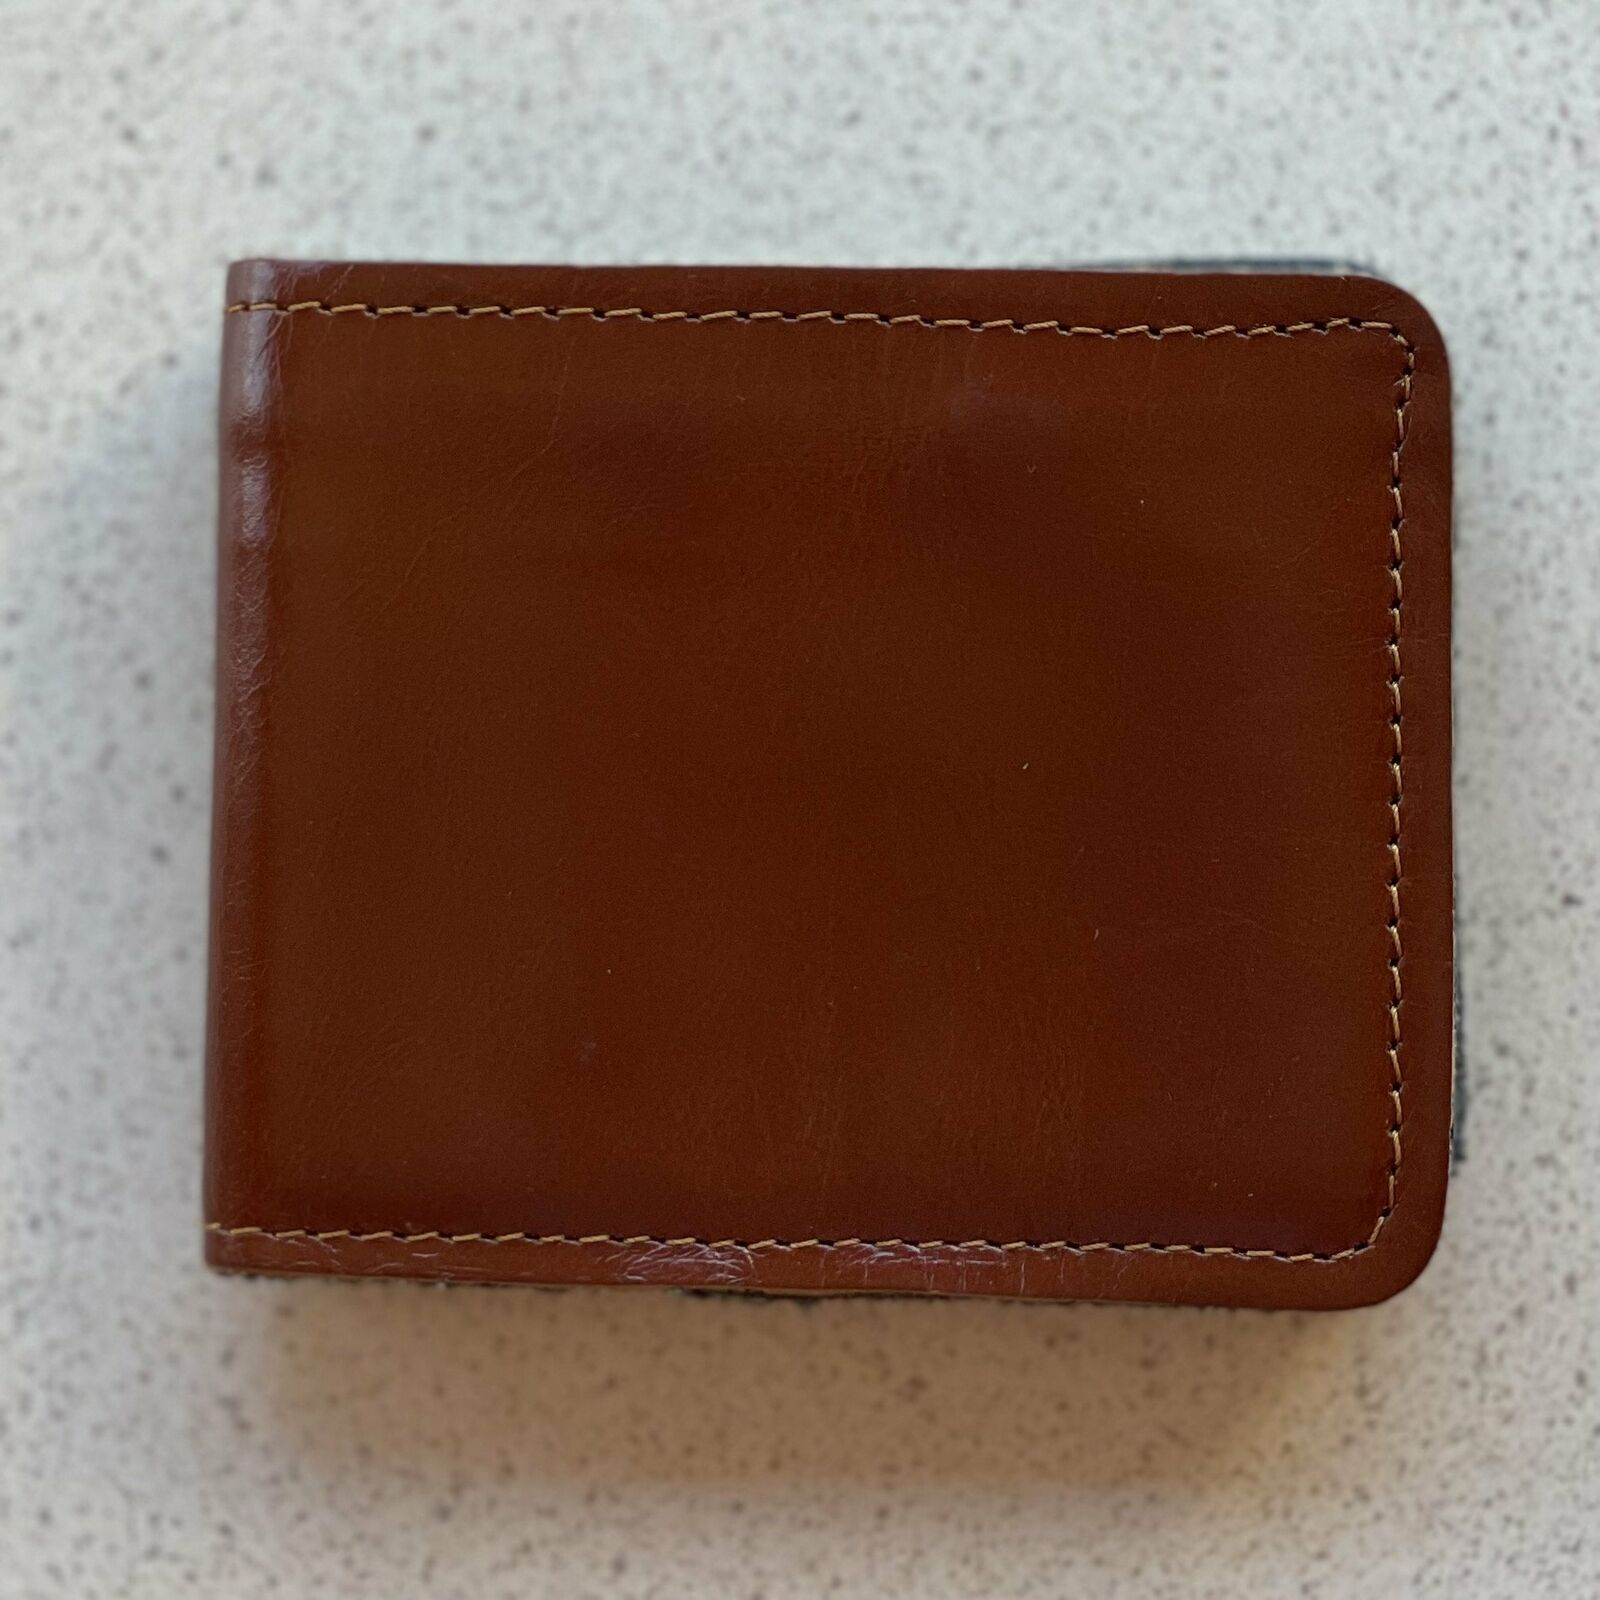 Hand Crafted Buffalo Leather Wallet - Tan